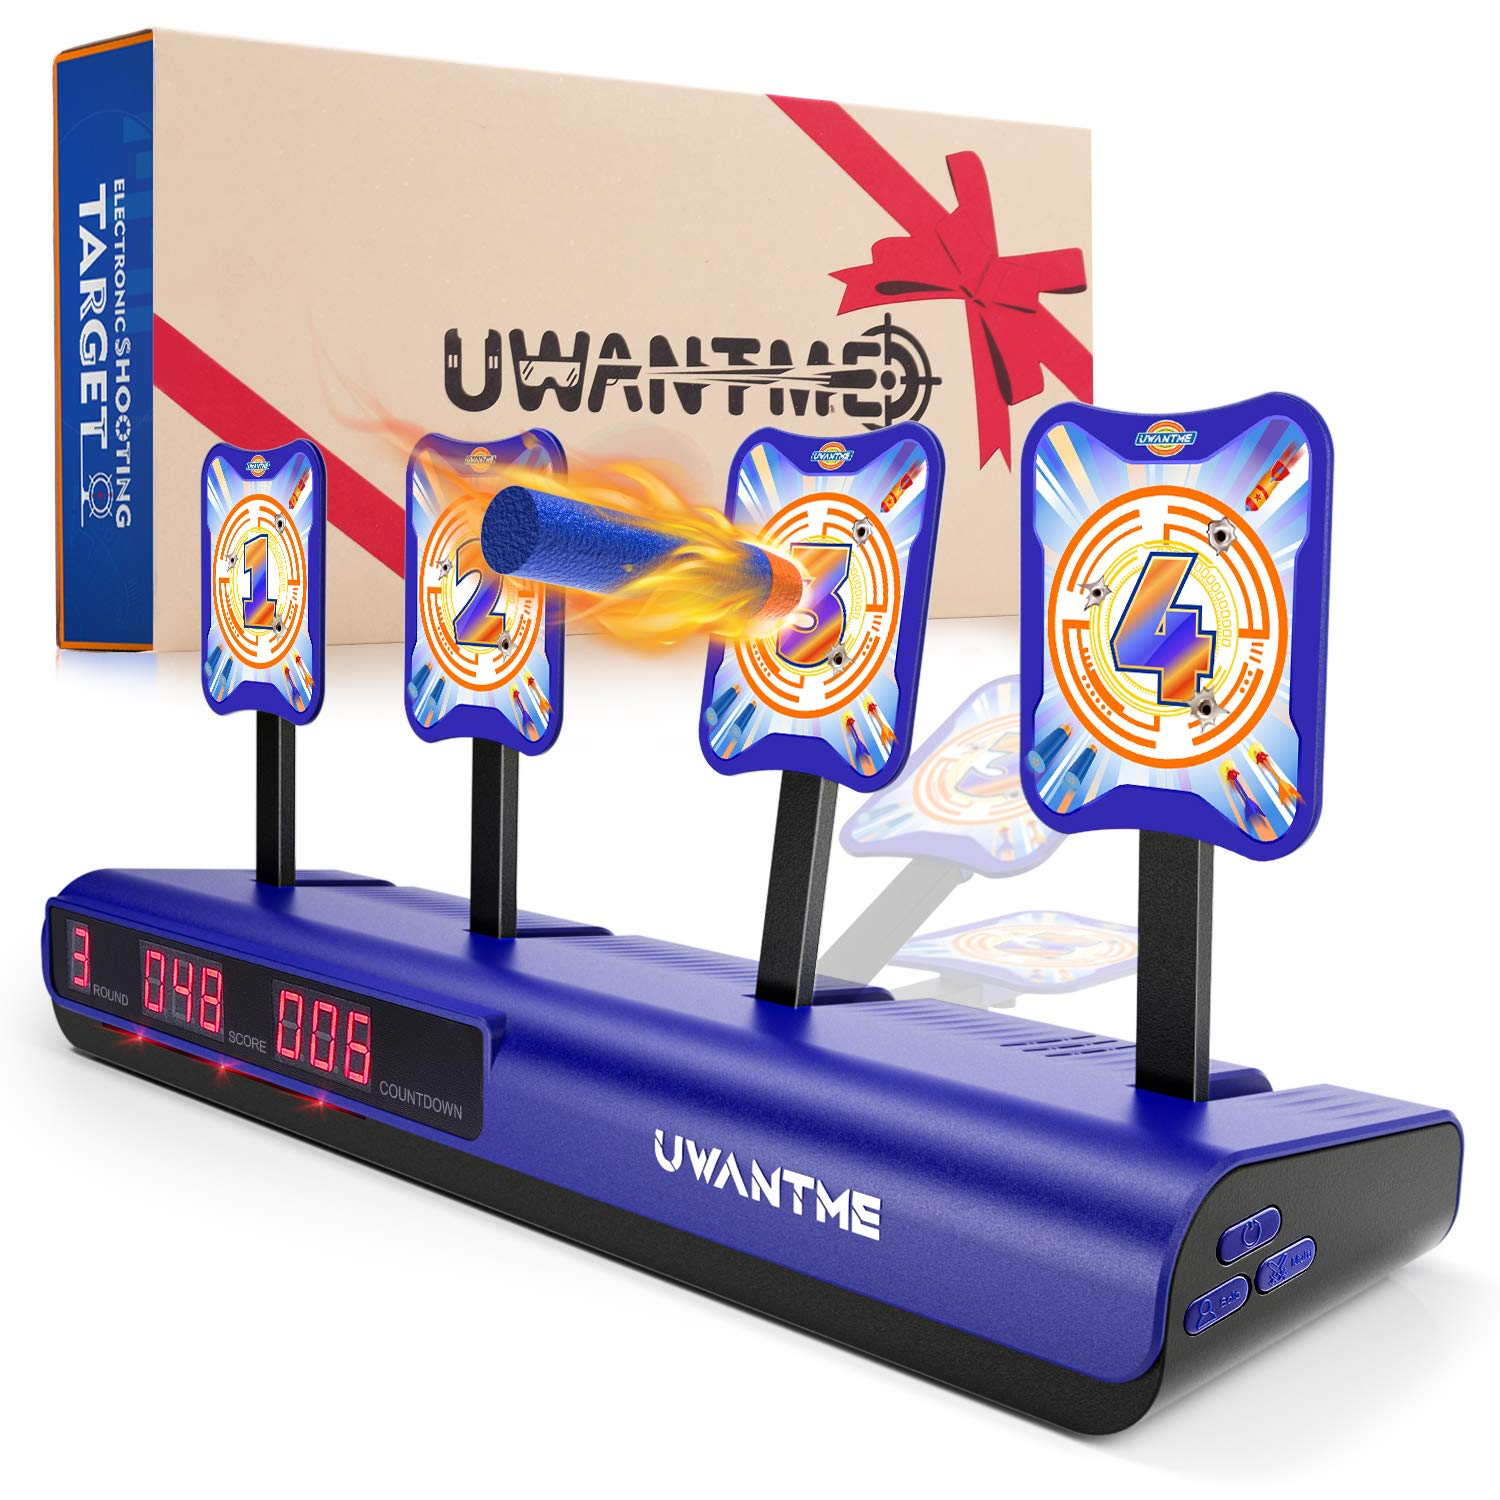 UWANTME Electronic Shooting Target for Nerf Guns Toys Scoring Auto Reset Digital Target Toys for Kids Boys Girls